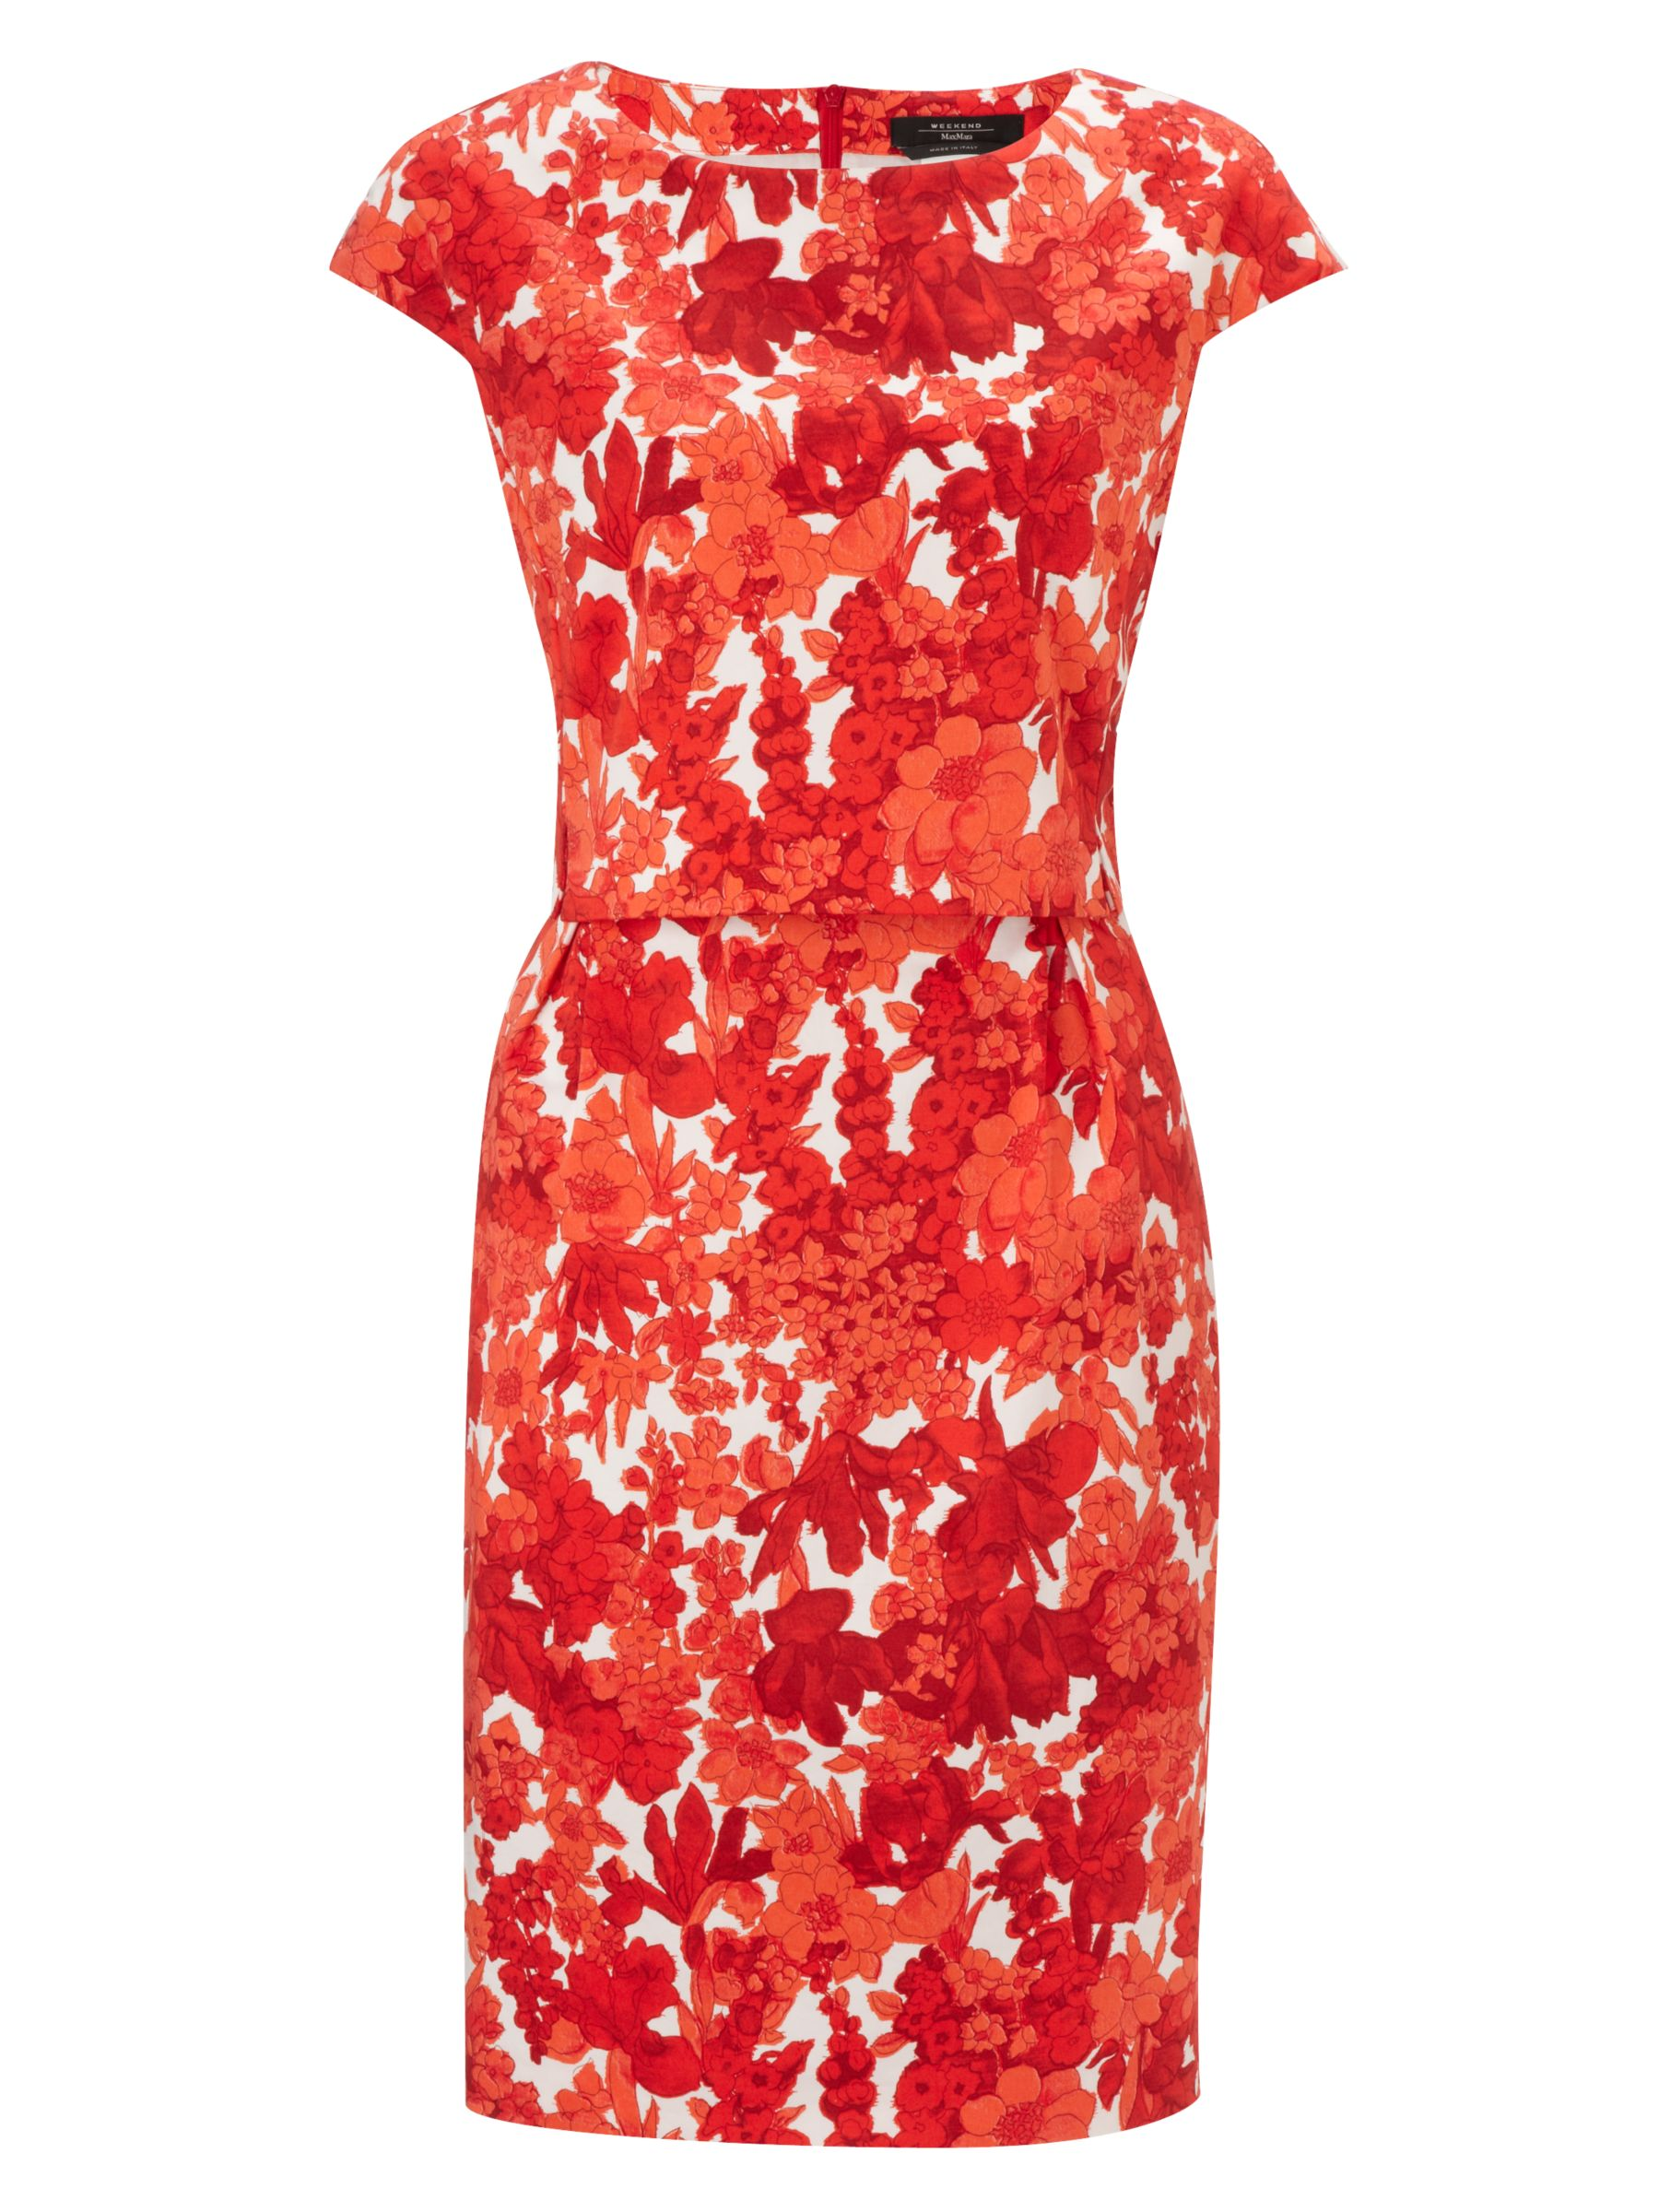 weekend by maxmara floral two layer dress red, weekend, maxmara, floral, two, layer, dress, red, weekend by maxmara, 8|10|12|14|16, women, womens dresses, gifts, wedding, wedding clothing, female guests, inactive womenswear, outfit ideas, 1771905